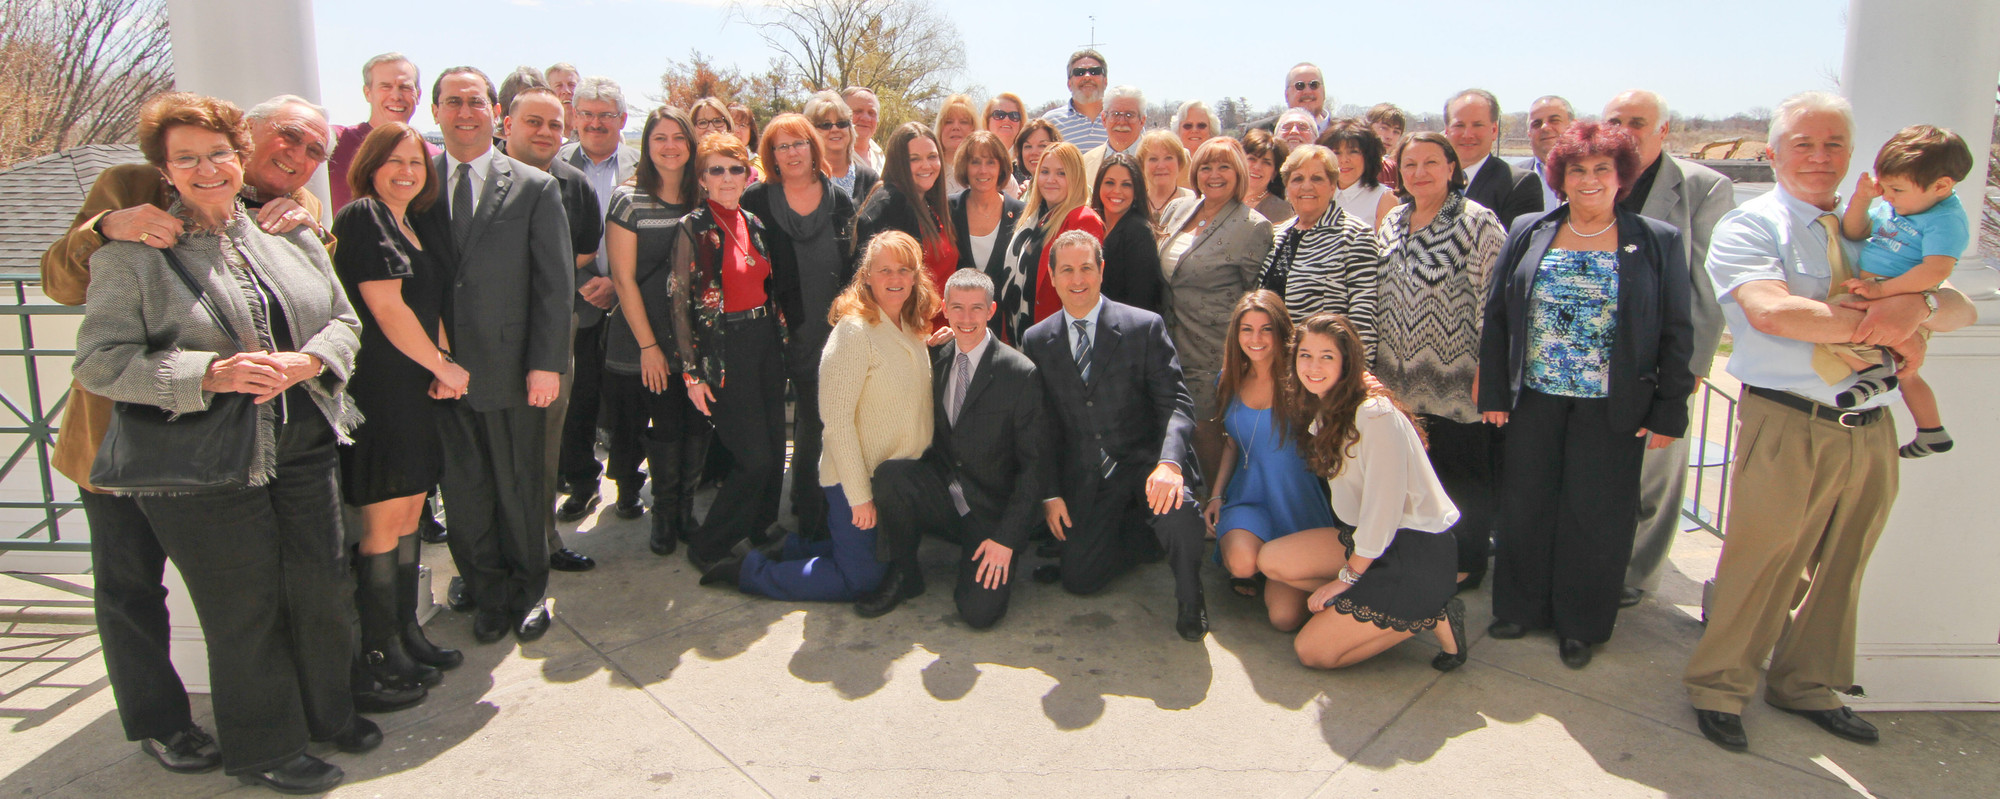 Hewlett-Woodmere Business Association members, family and friends of Michael Ludwig celebrated his life at the installation breakfast.